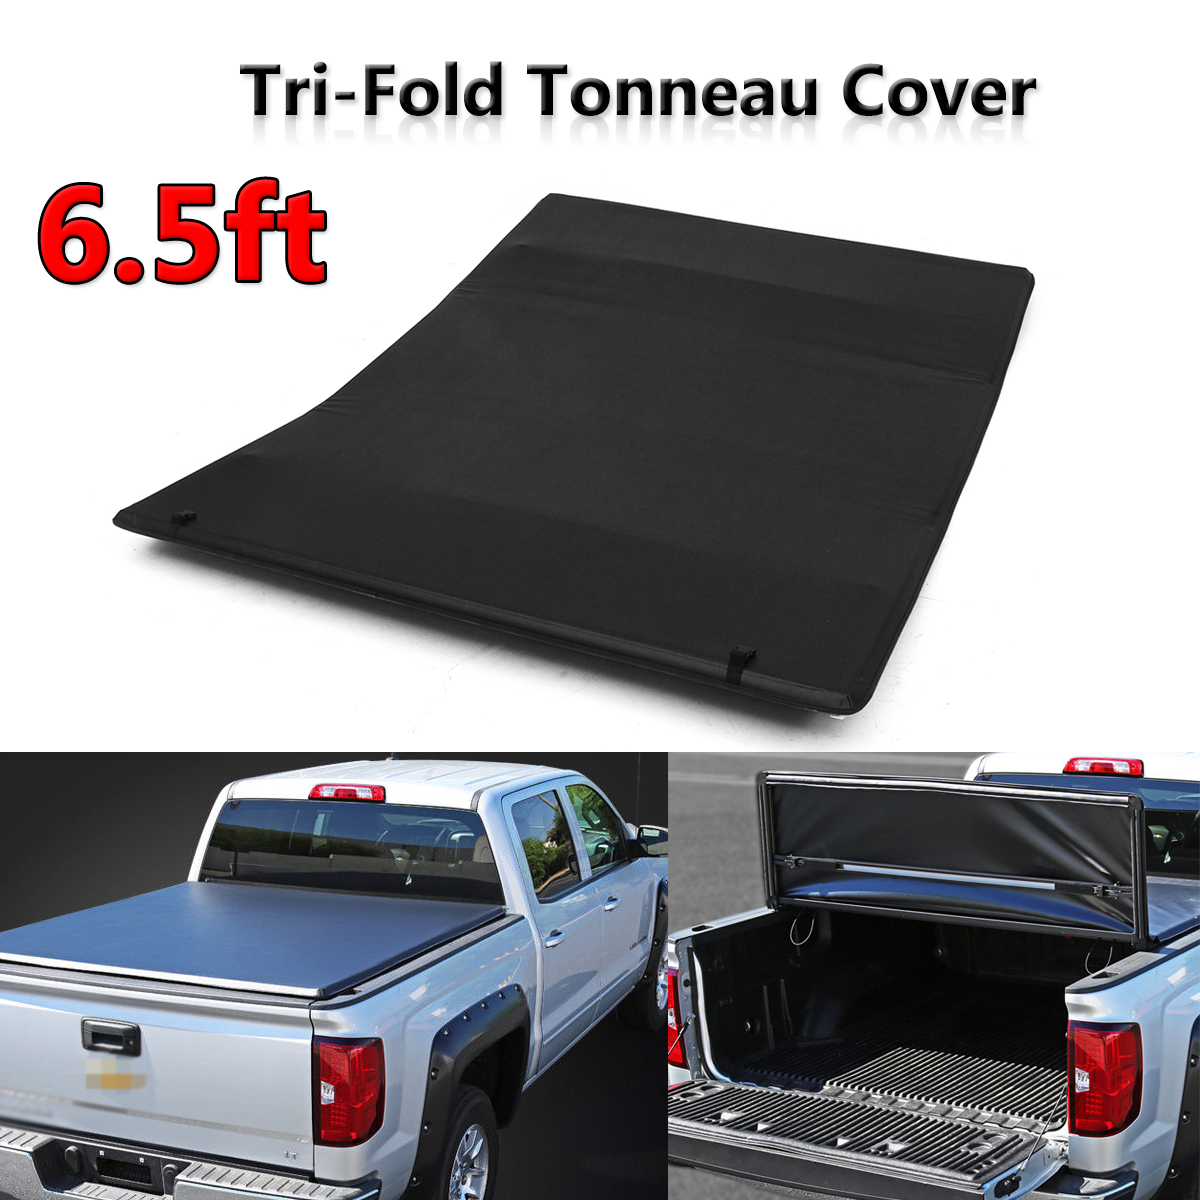 Tonneau Cover Soft Tri Fold for Chevy for GMC Sierra Silverado Pickup 6.5ft Bed ksp 4 1 25mm chevy 6 lug wheel spacers adapters 6x5 5 to 6x5 5 139 7 108mm bore m14x1 5 studs for silverado gmc sierra 1500